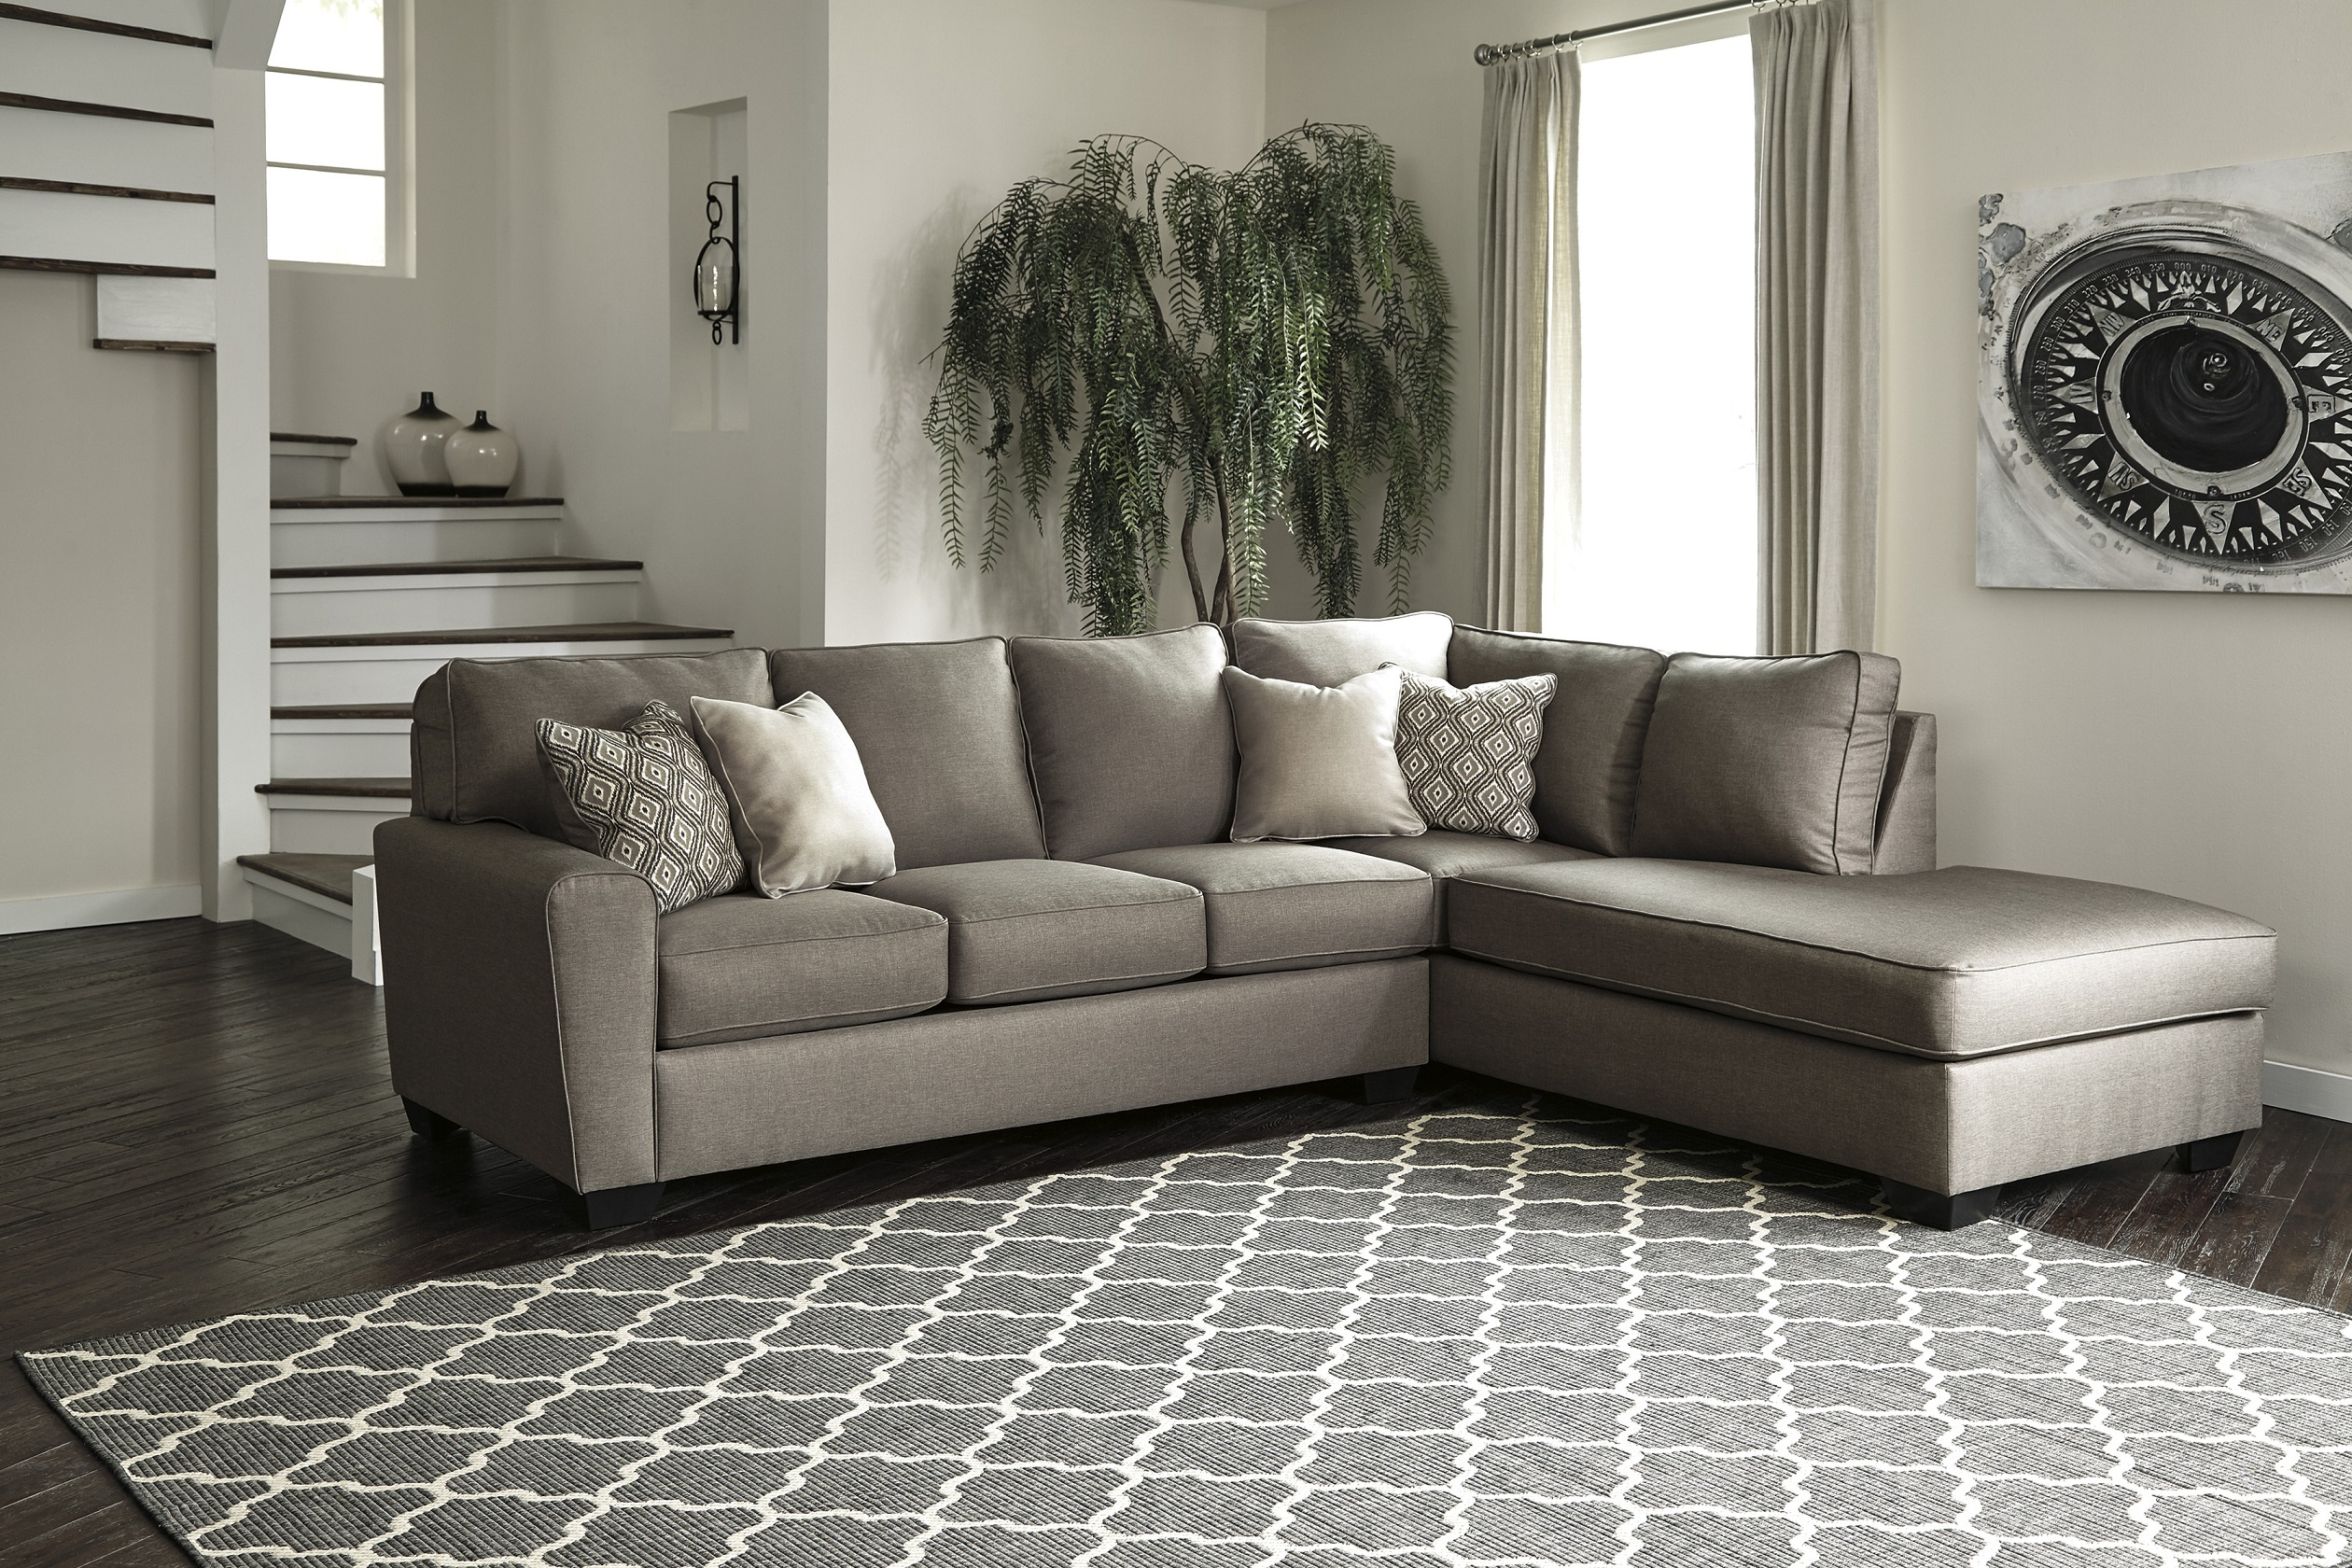 Calicho Charcoal Sectional by Ashley 91202-17 wide tapered ...